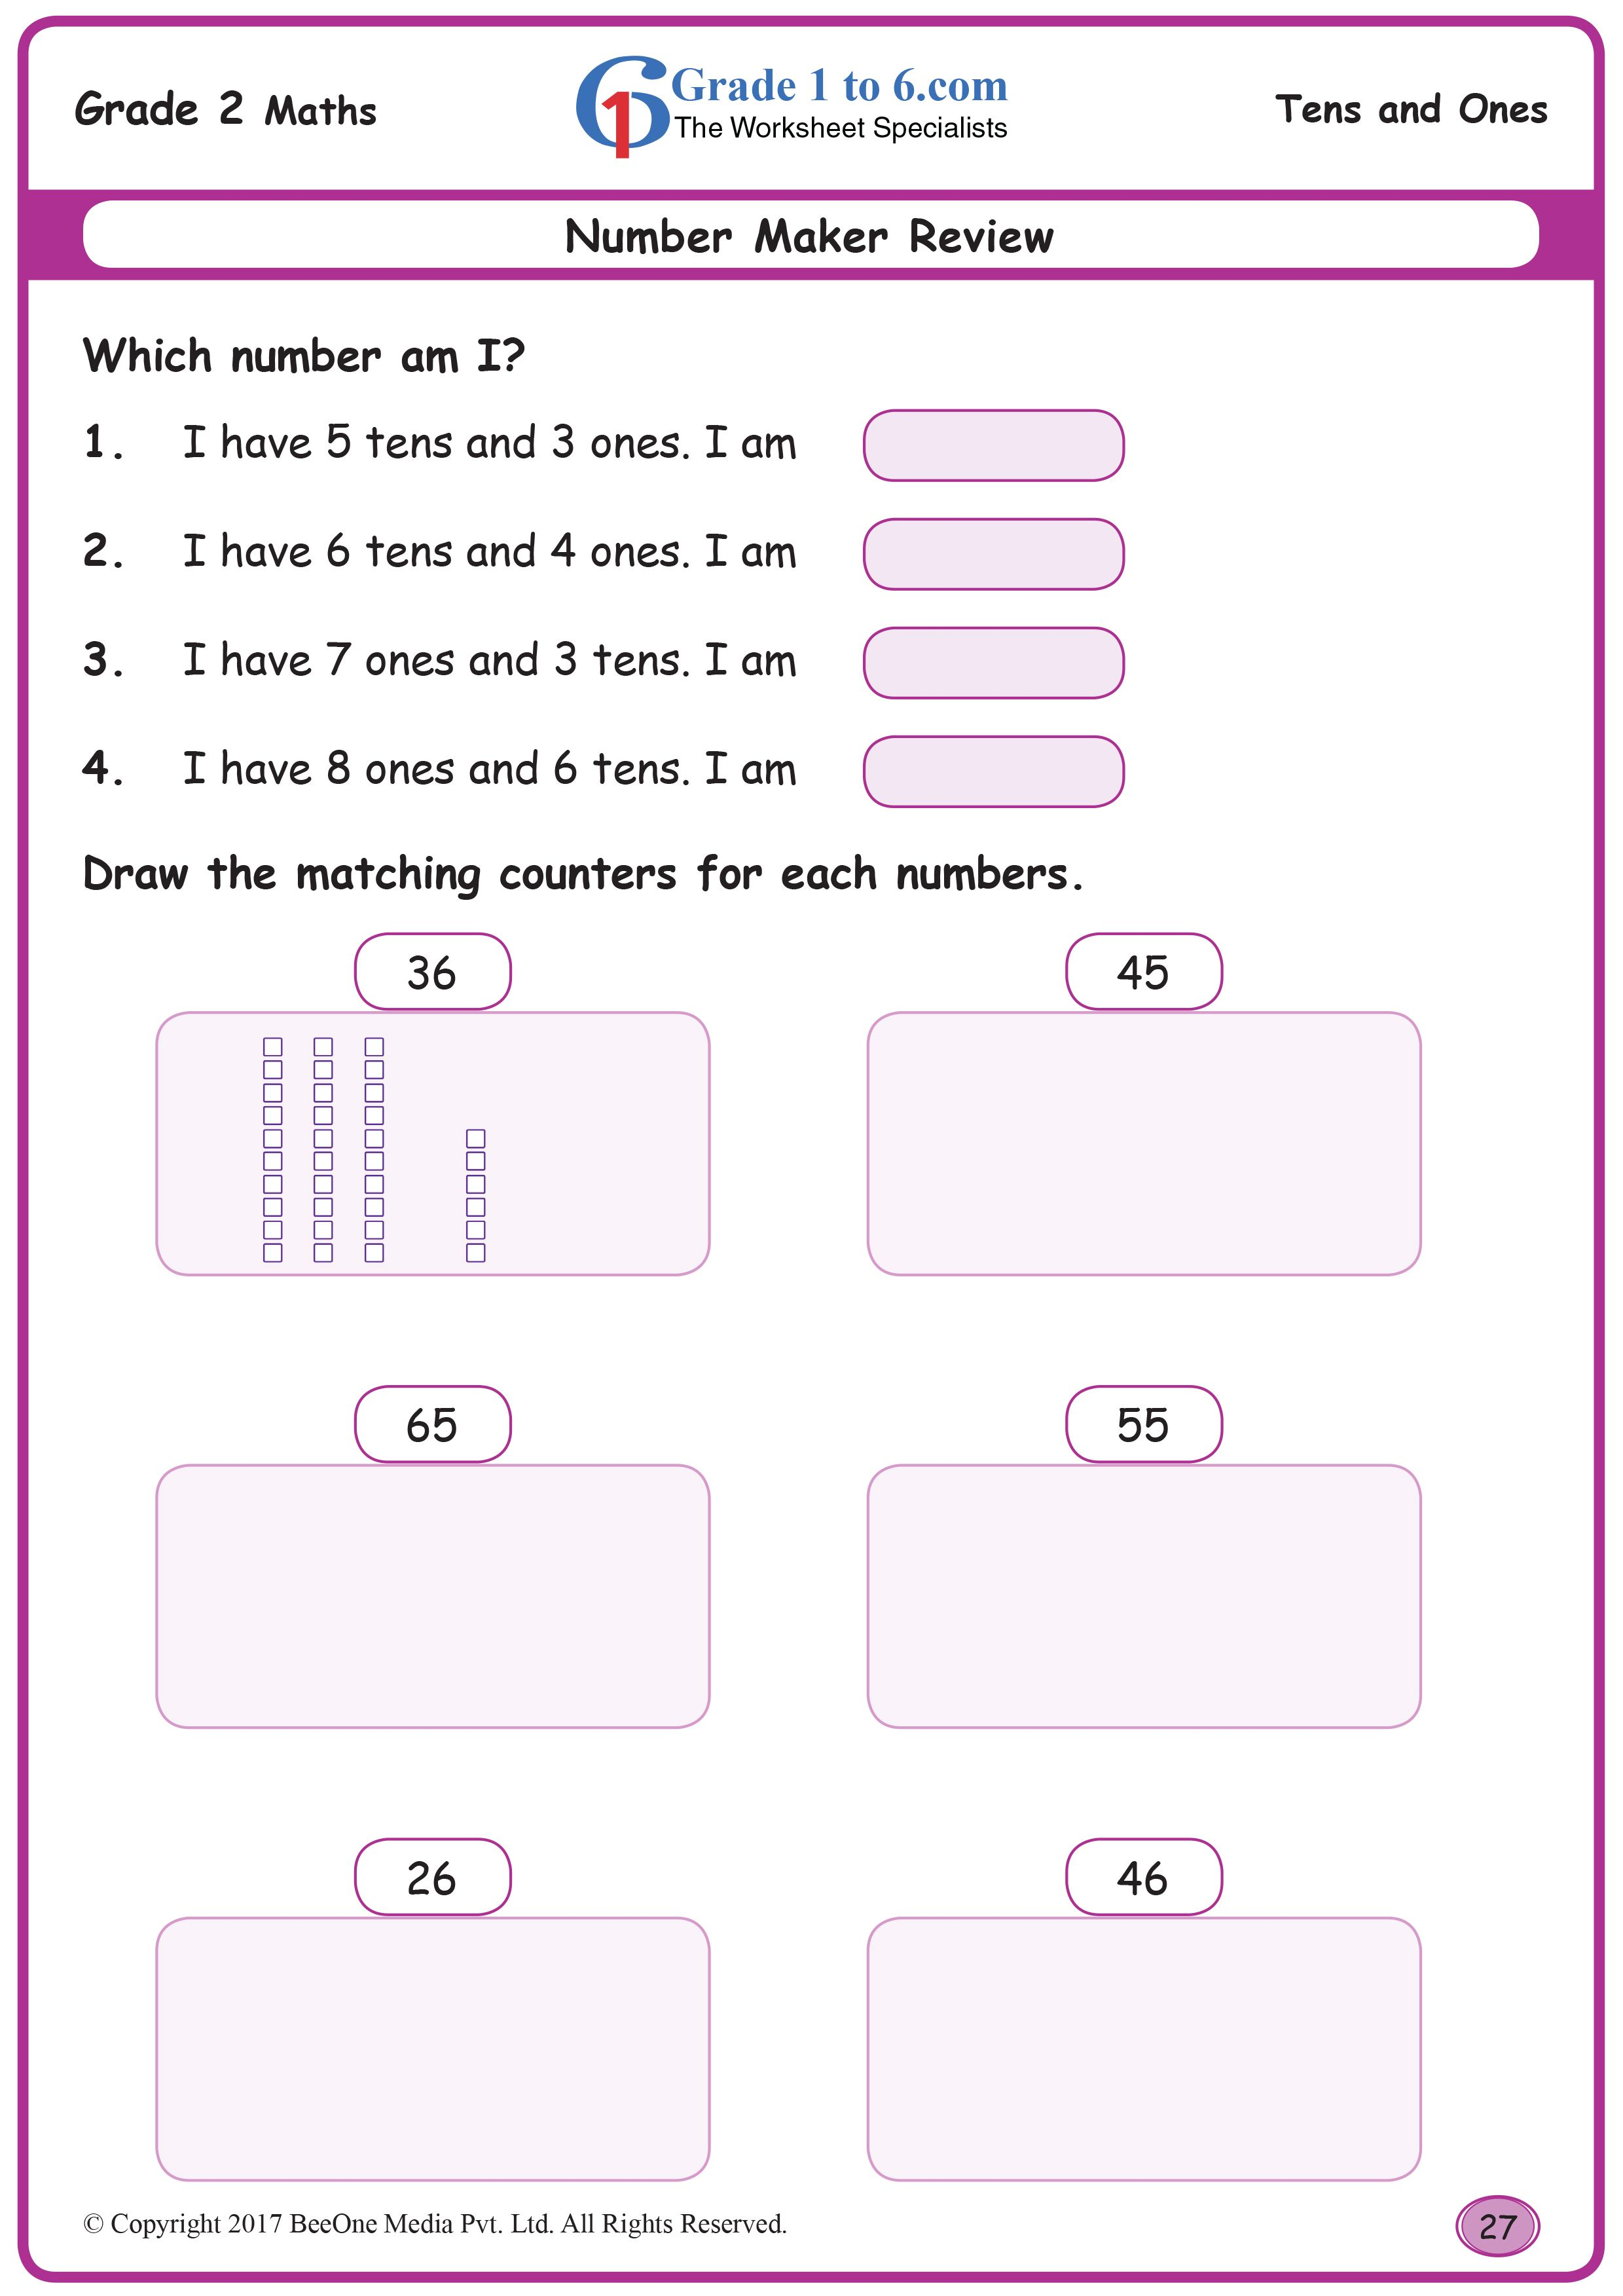 Numbermaker Buy The Entire E Workbook Of 300 Plus Pages